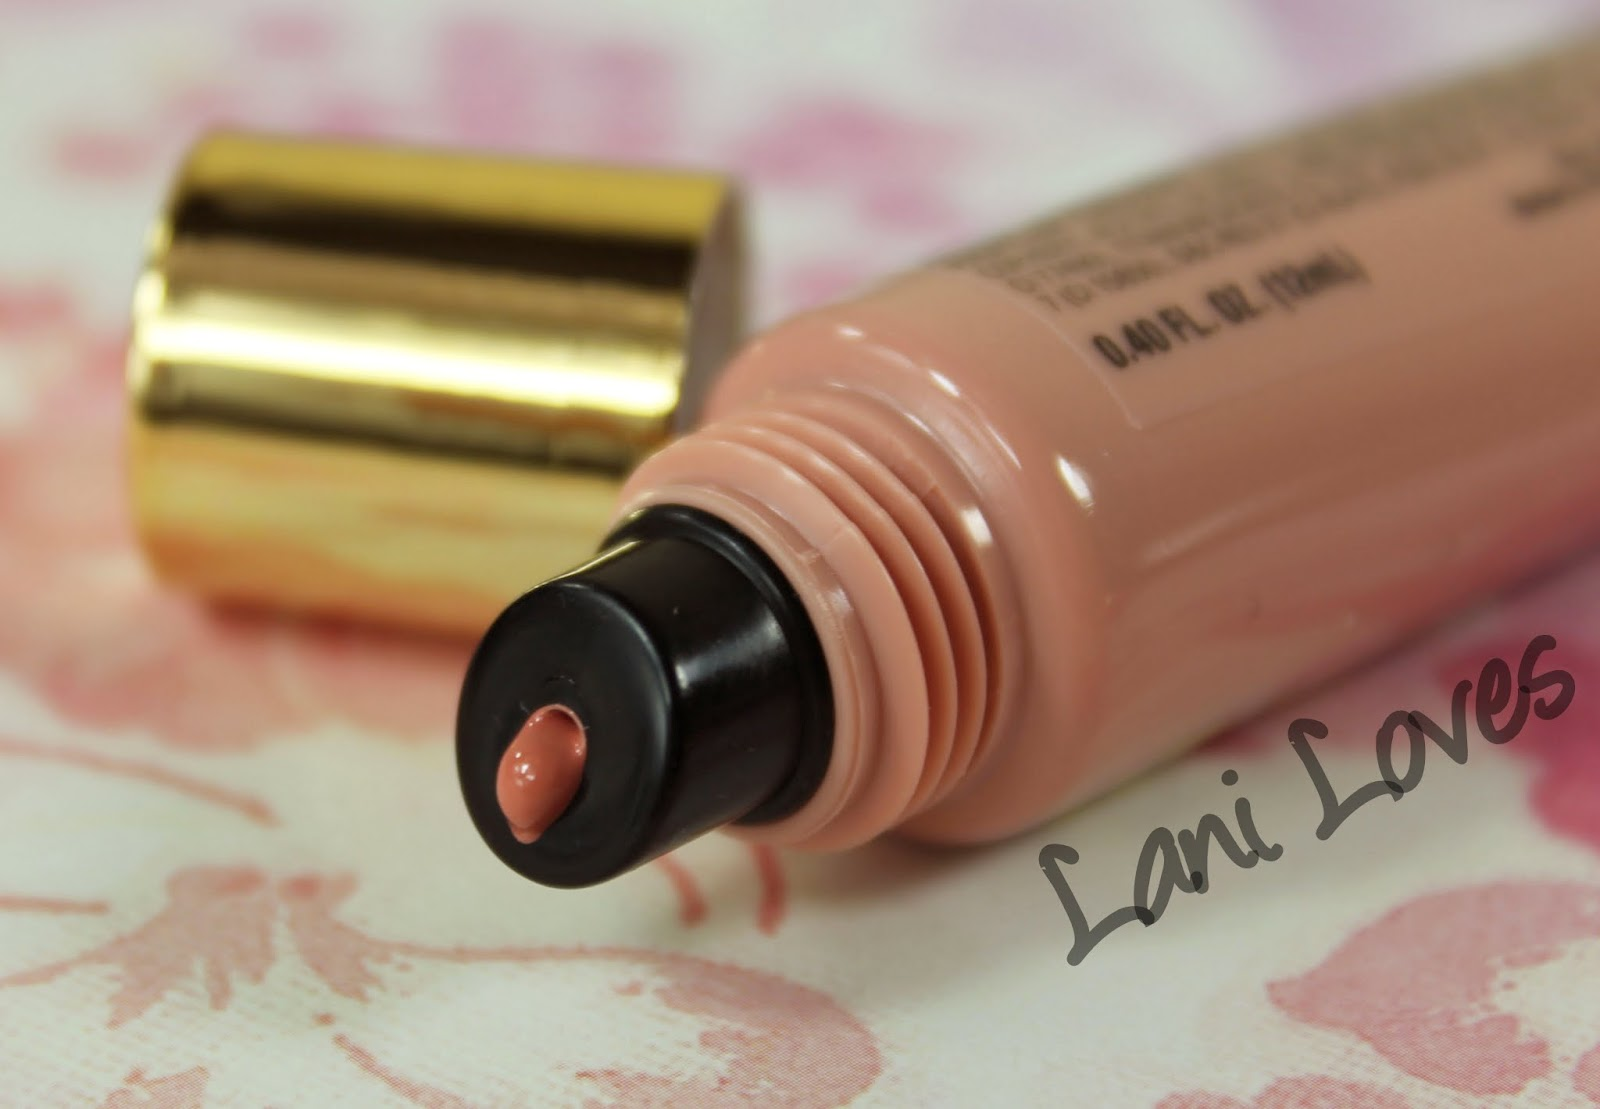 LA Girl Glazed Lip Paint - Elude Swatches & Review